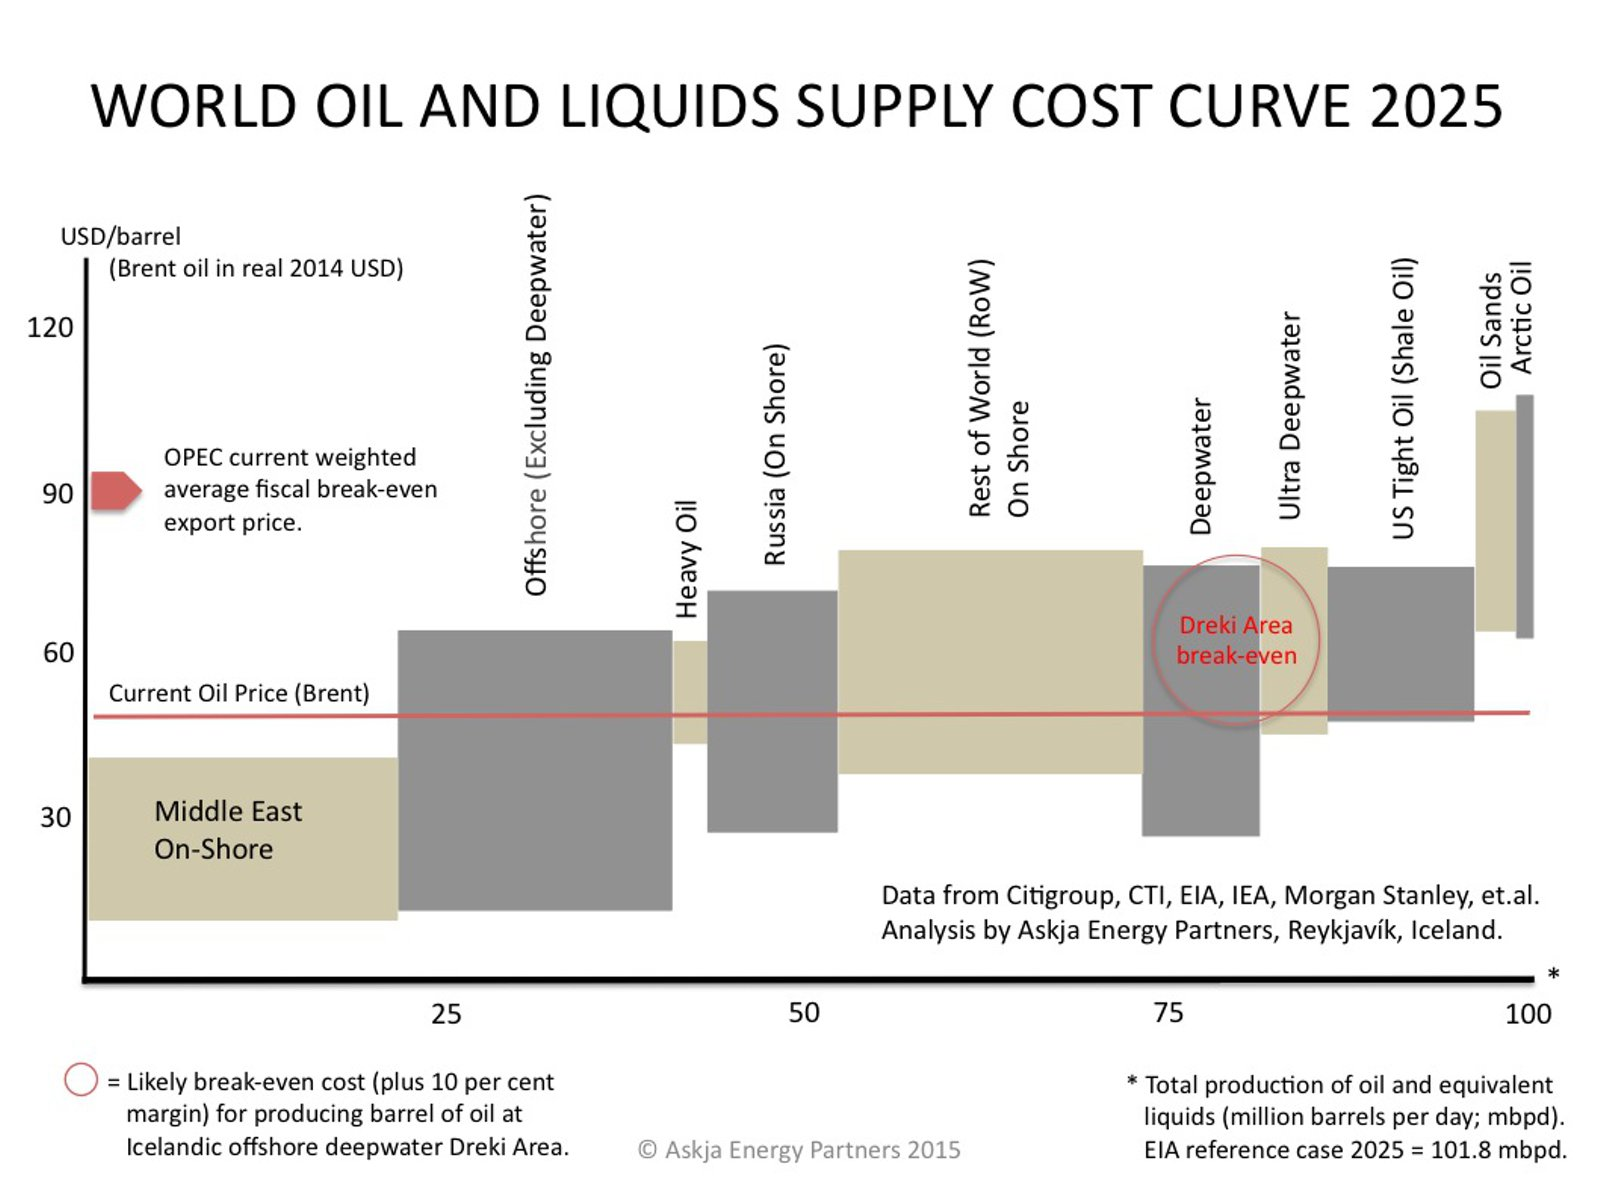 Oil-and-Liquds_World-Global-Supply-Cost-Curve-2025-compared-to-Dreki-Area-Iceland_Askja-Energy-Partners-2015